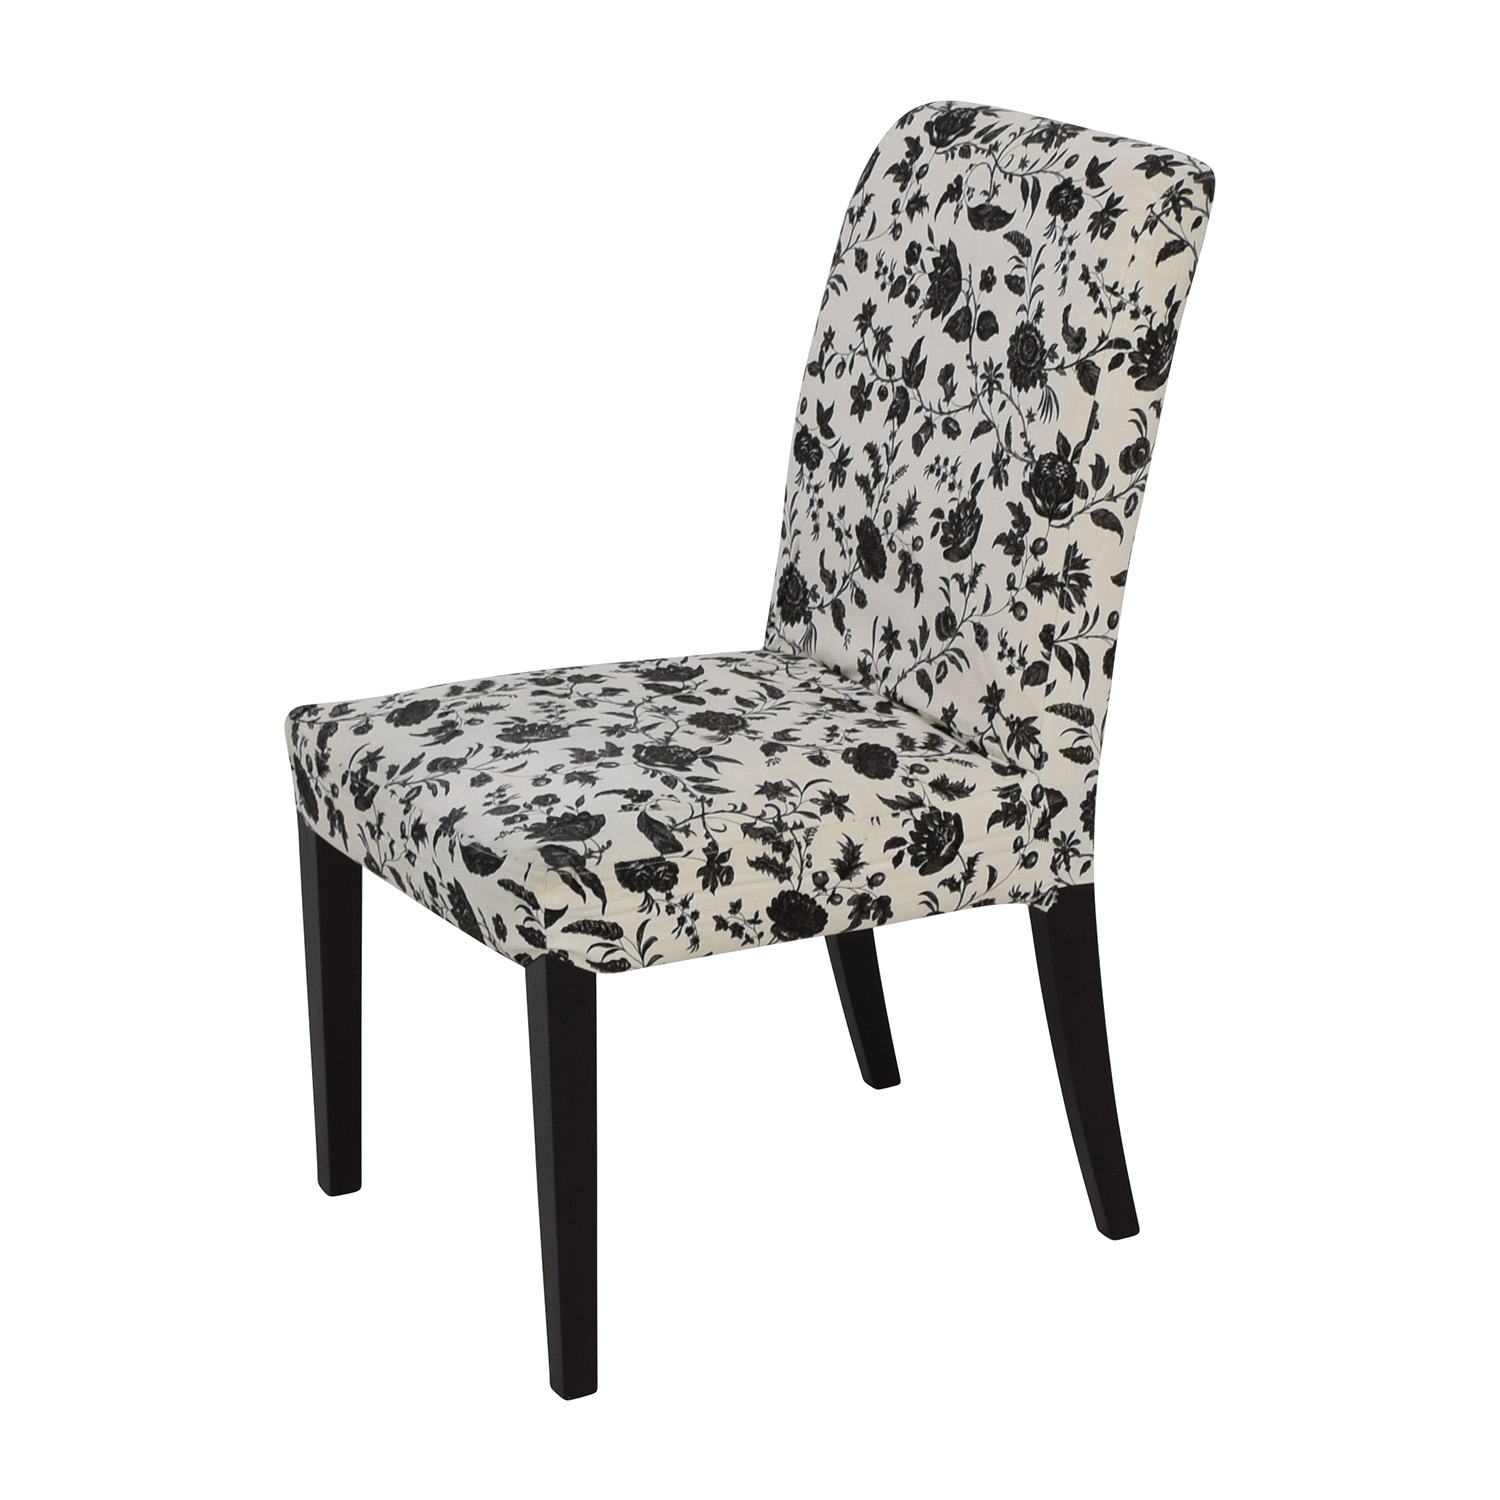 Floral Chairs 77 Off Black And White Floral Dining Chair Chairs